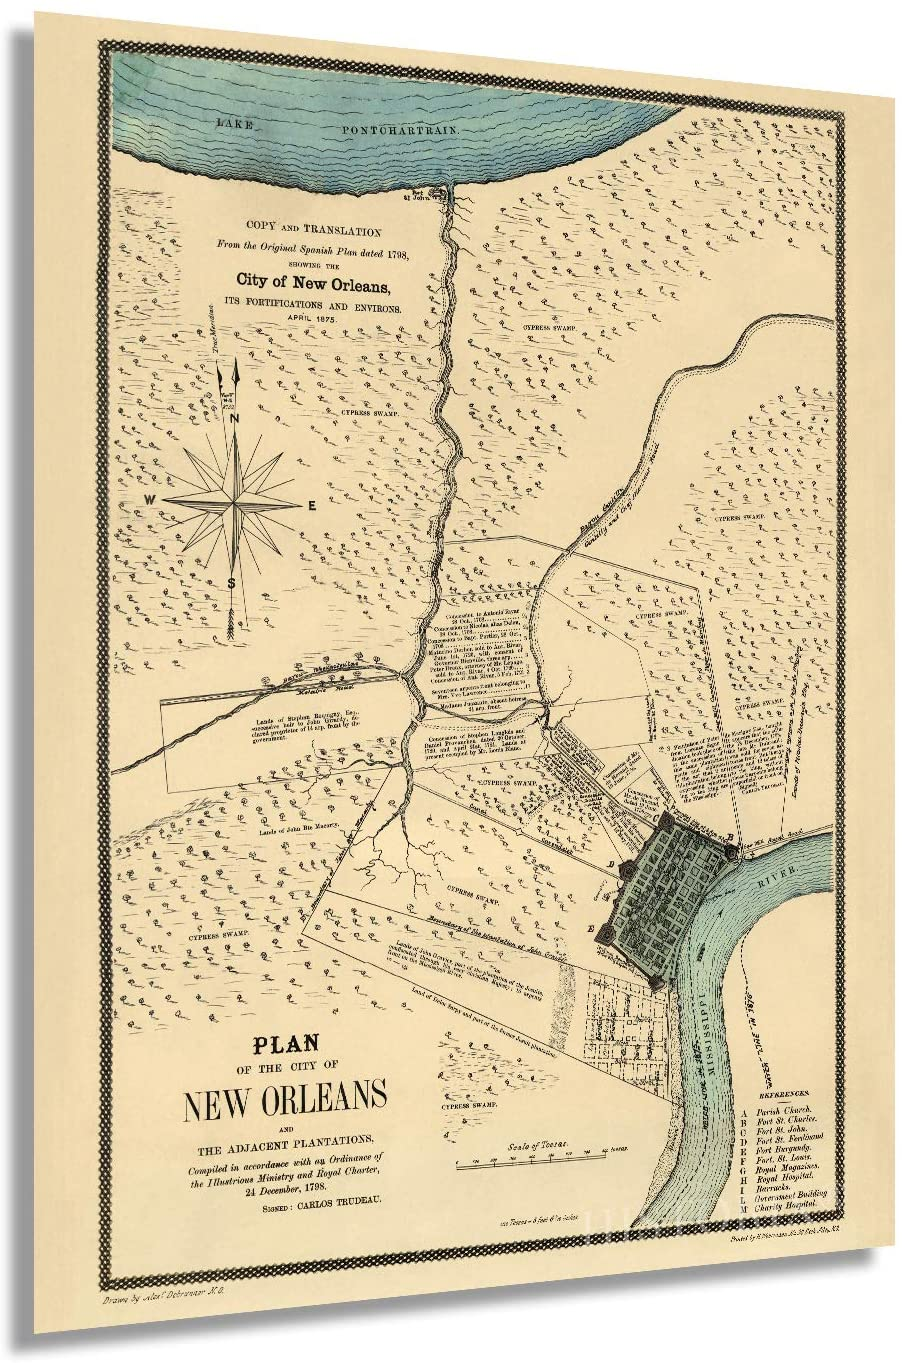 1875 Plan of the City of New Orleans